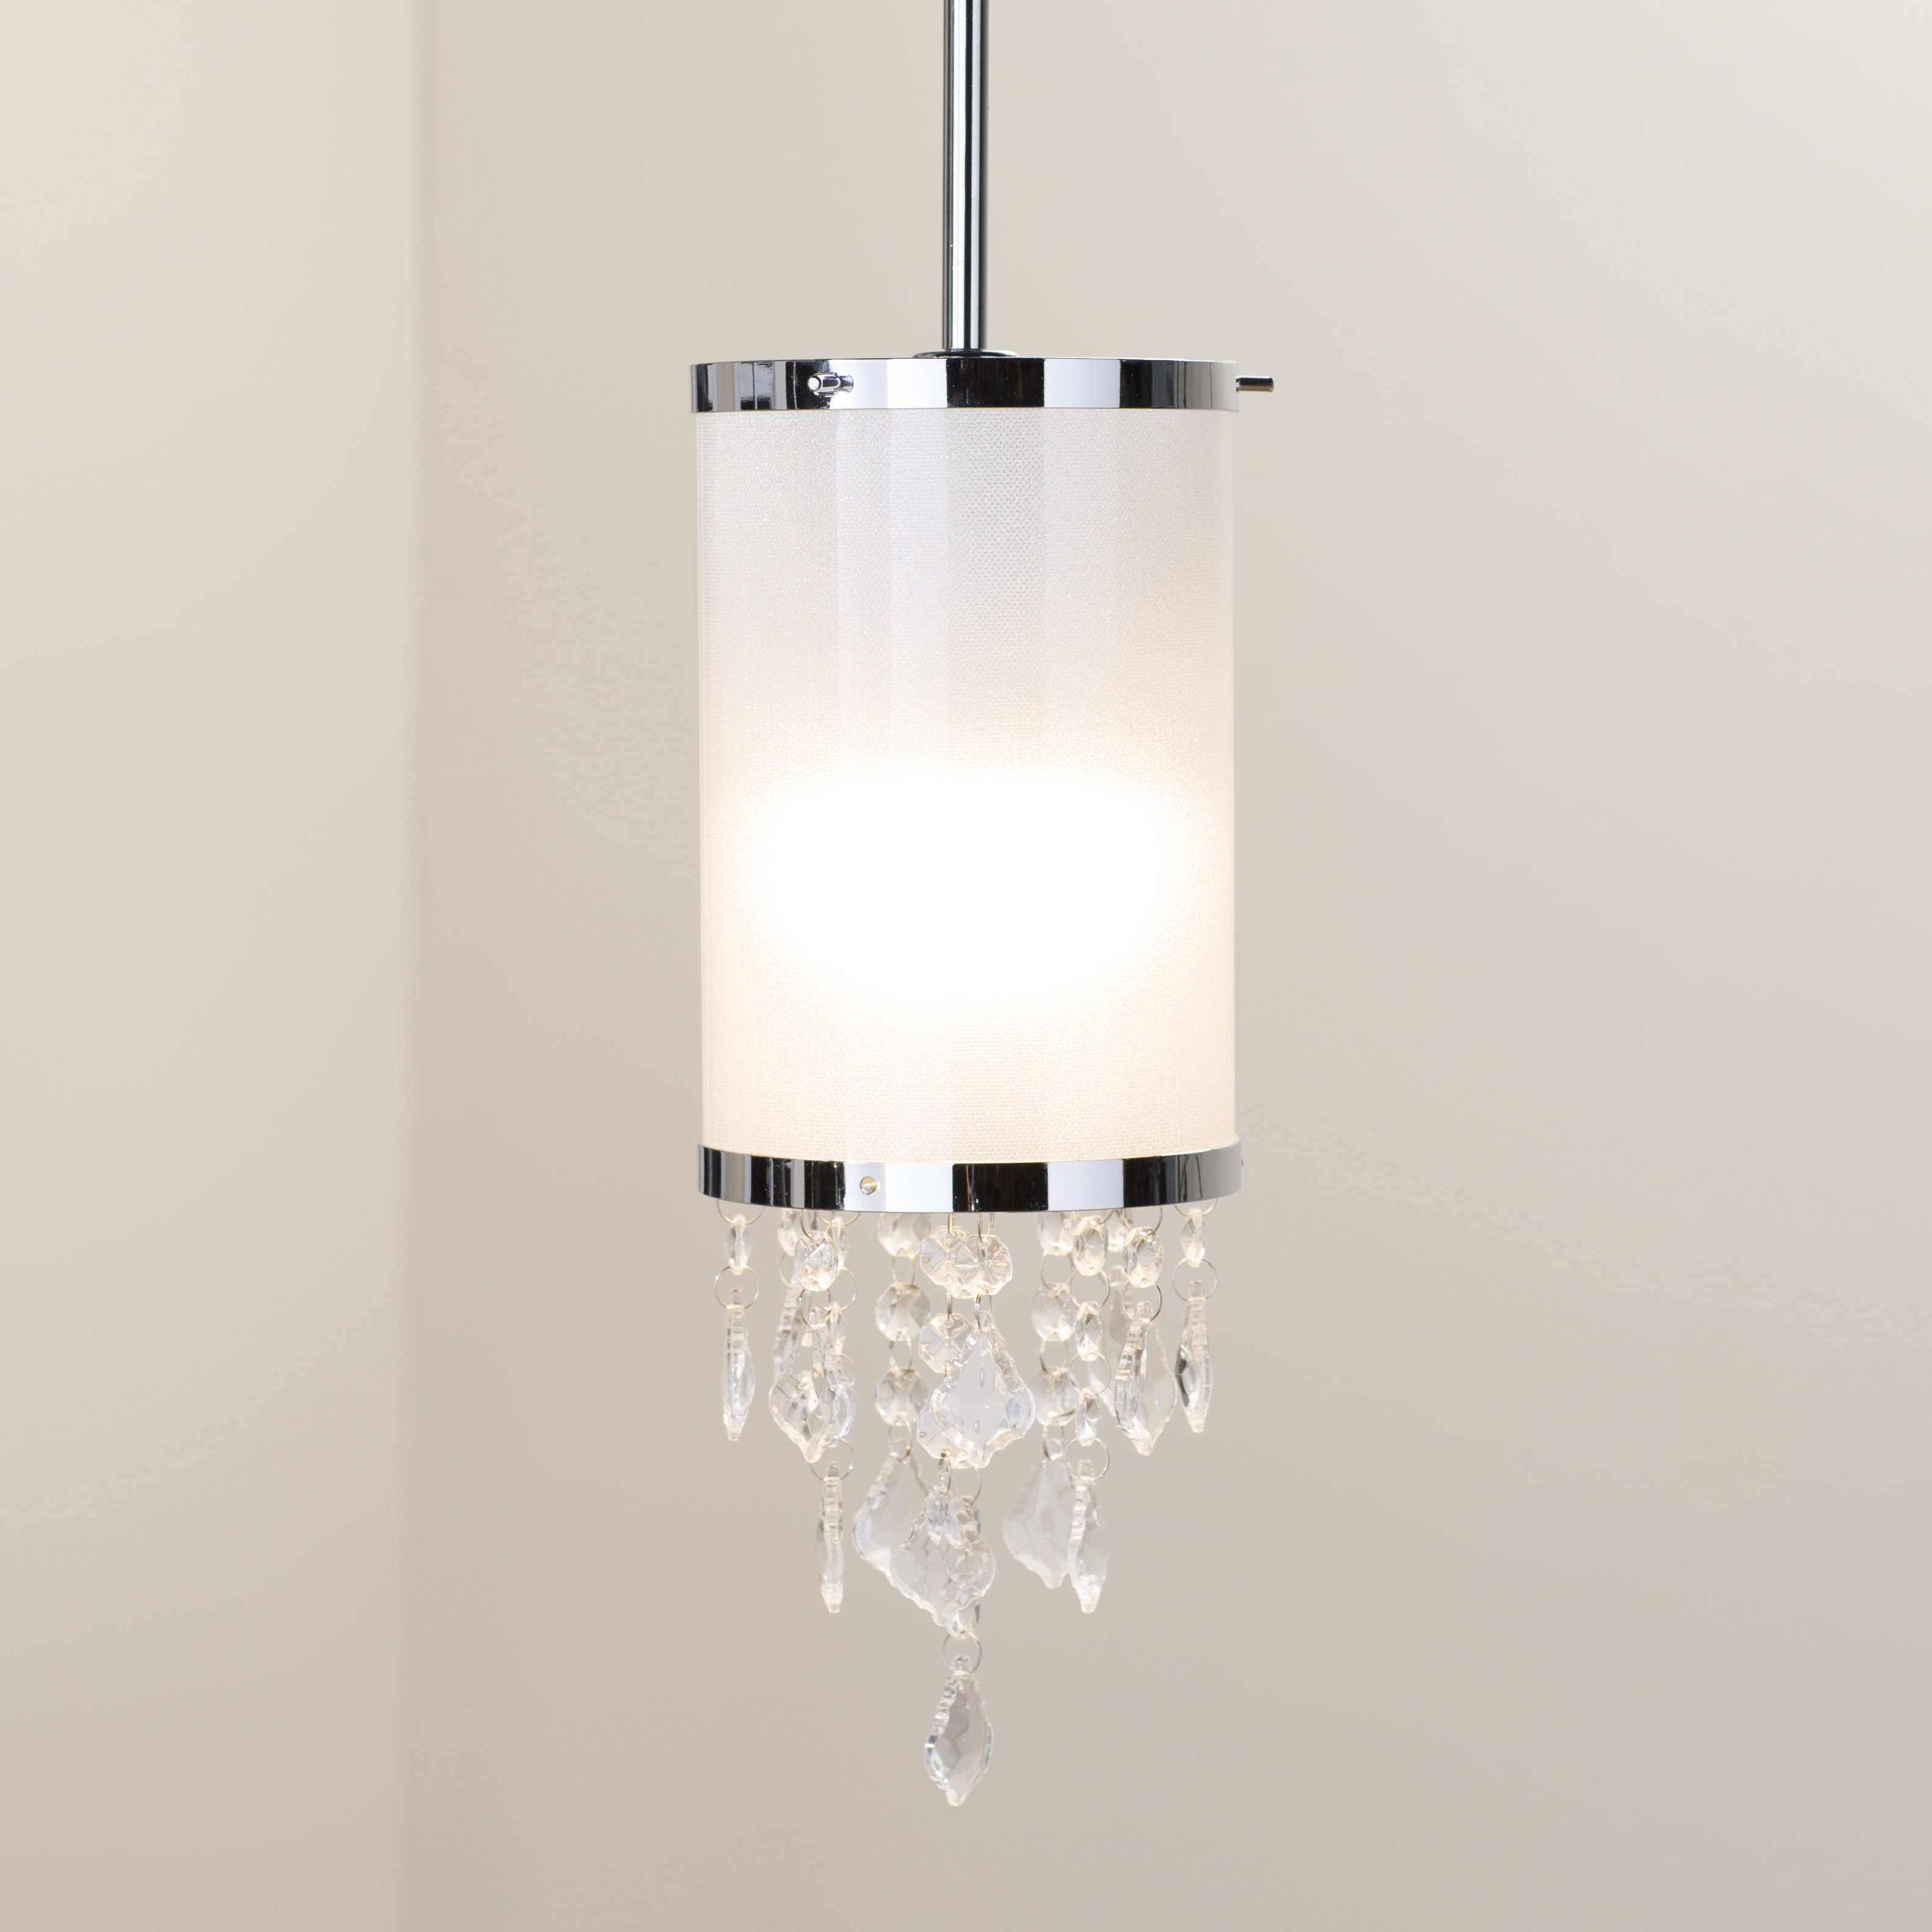 "2020 Crystal Mini (Less Than 10"" Wide) Pendant Lighting You'll Inside Kraker 1 Light Single Cylinder Pendants (Gallery 10 of 20)"